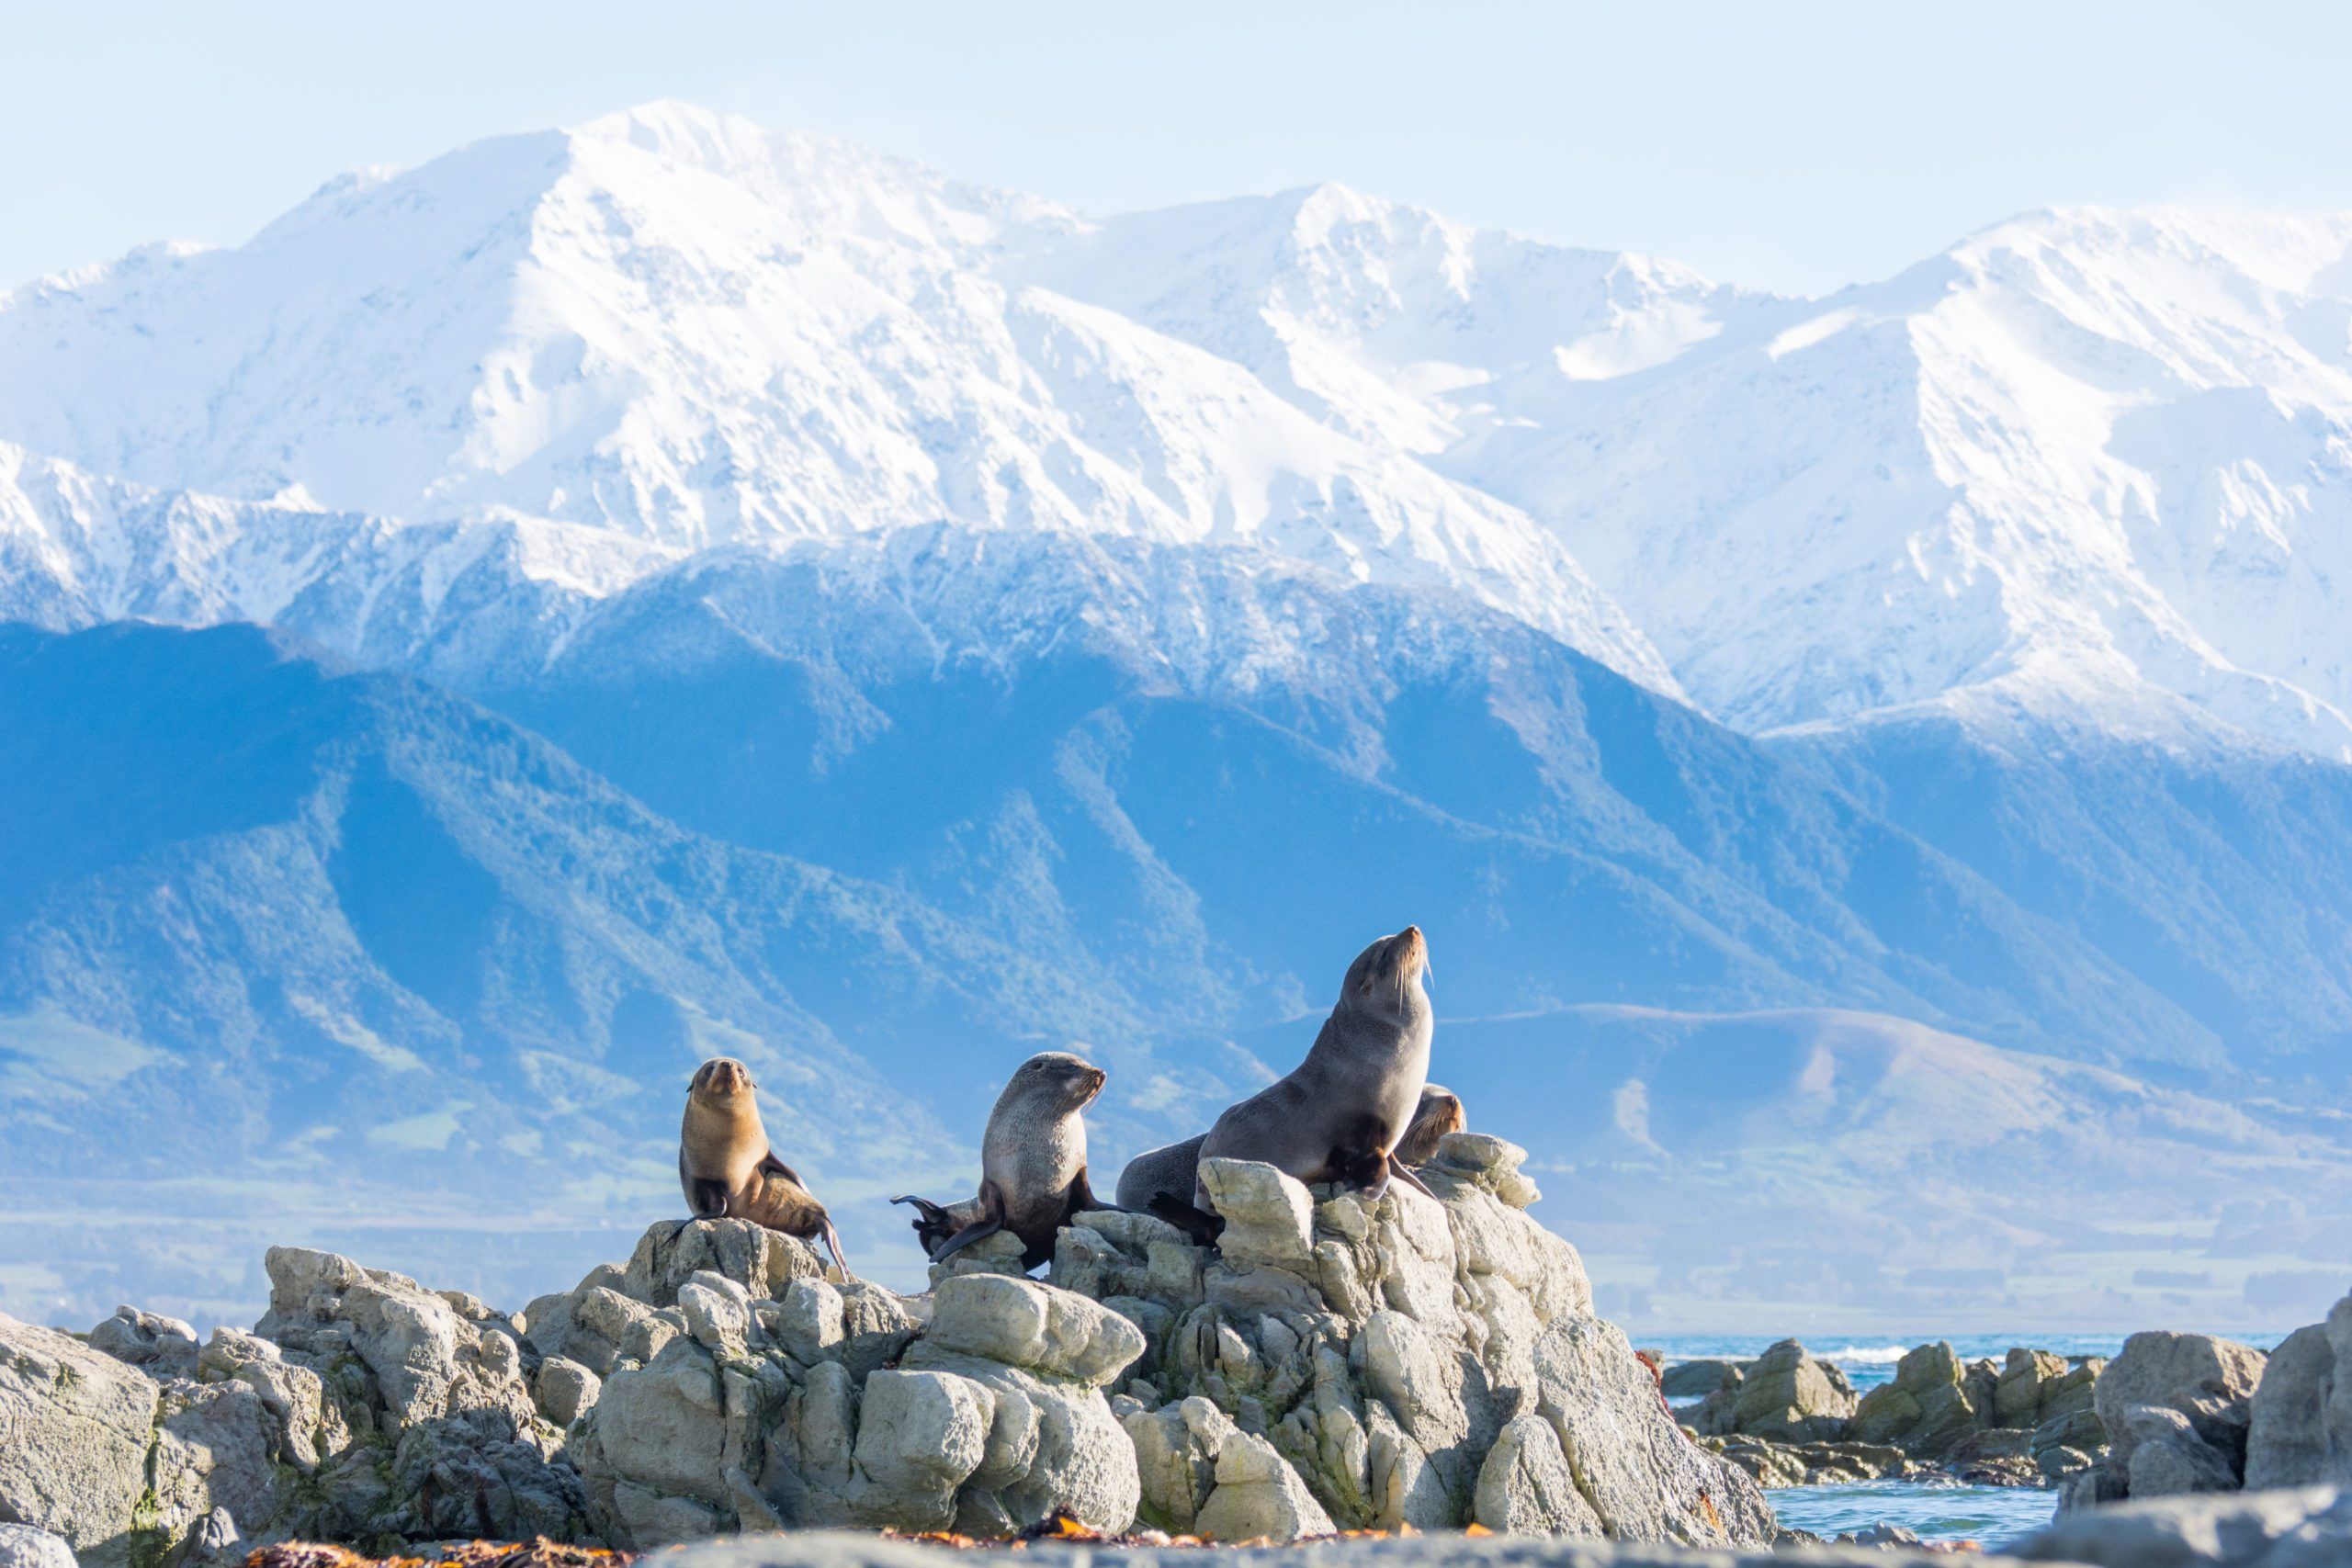 seals atop some rocks with snowy mountains in the background